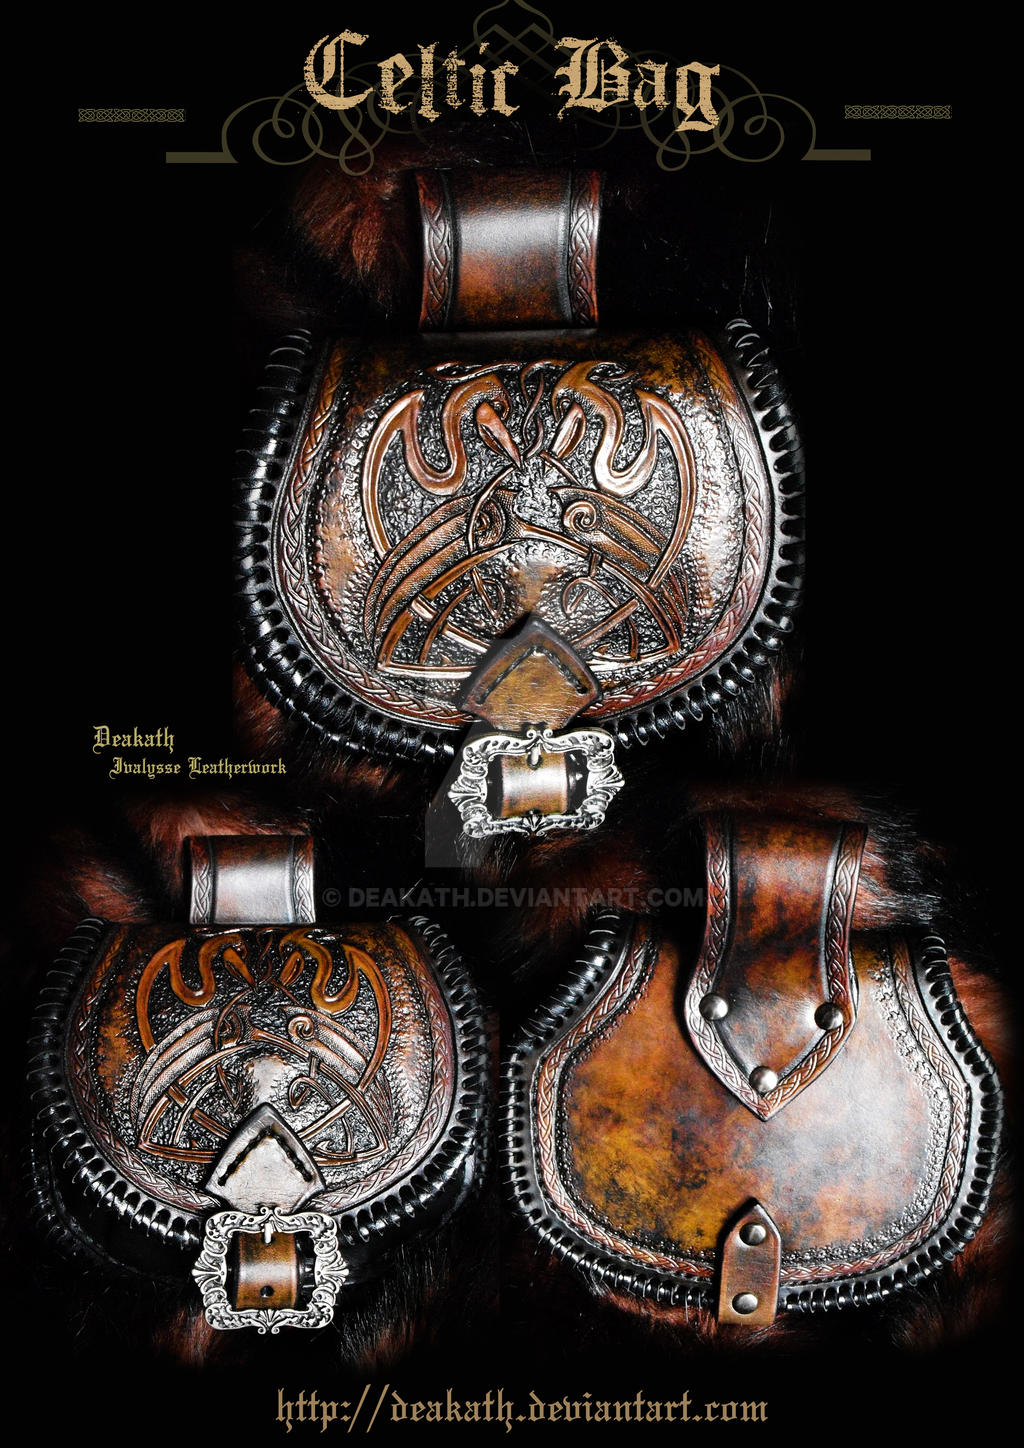 Celtic Bag - Celtic female armor set by Deakath